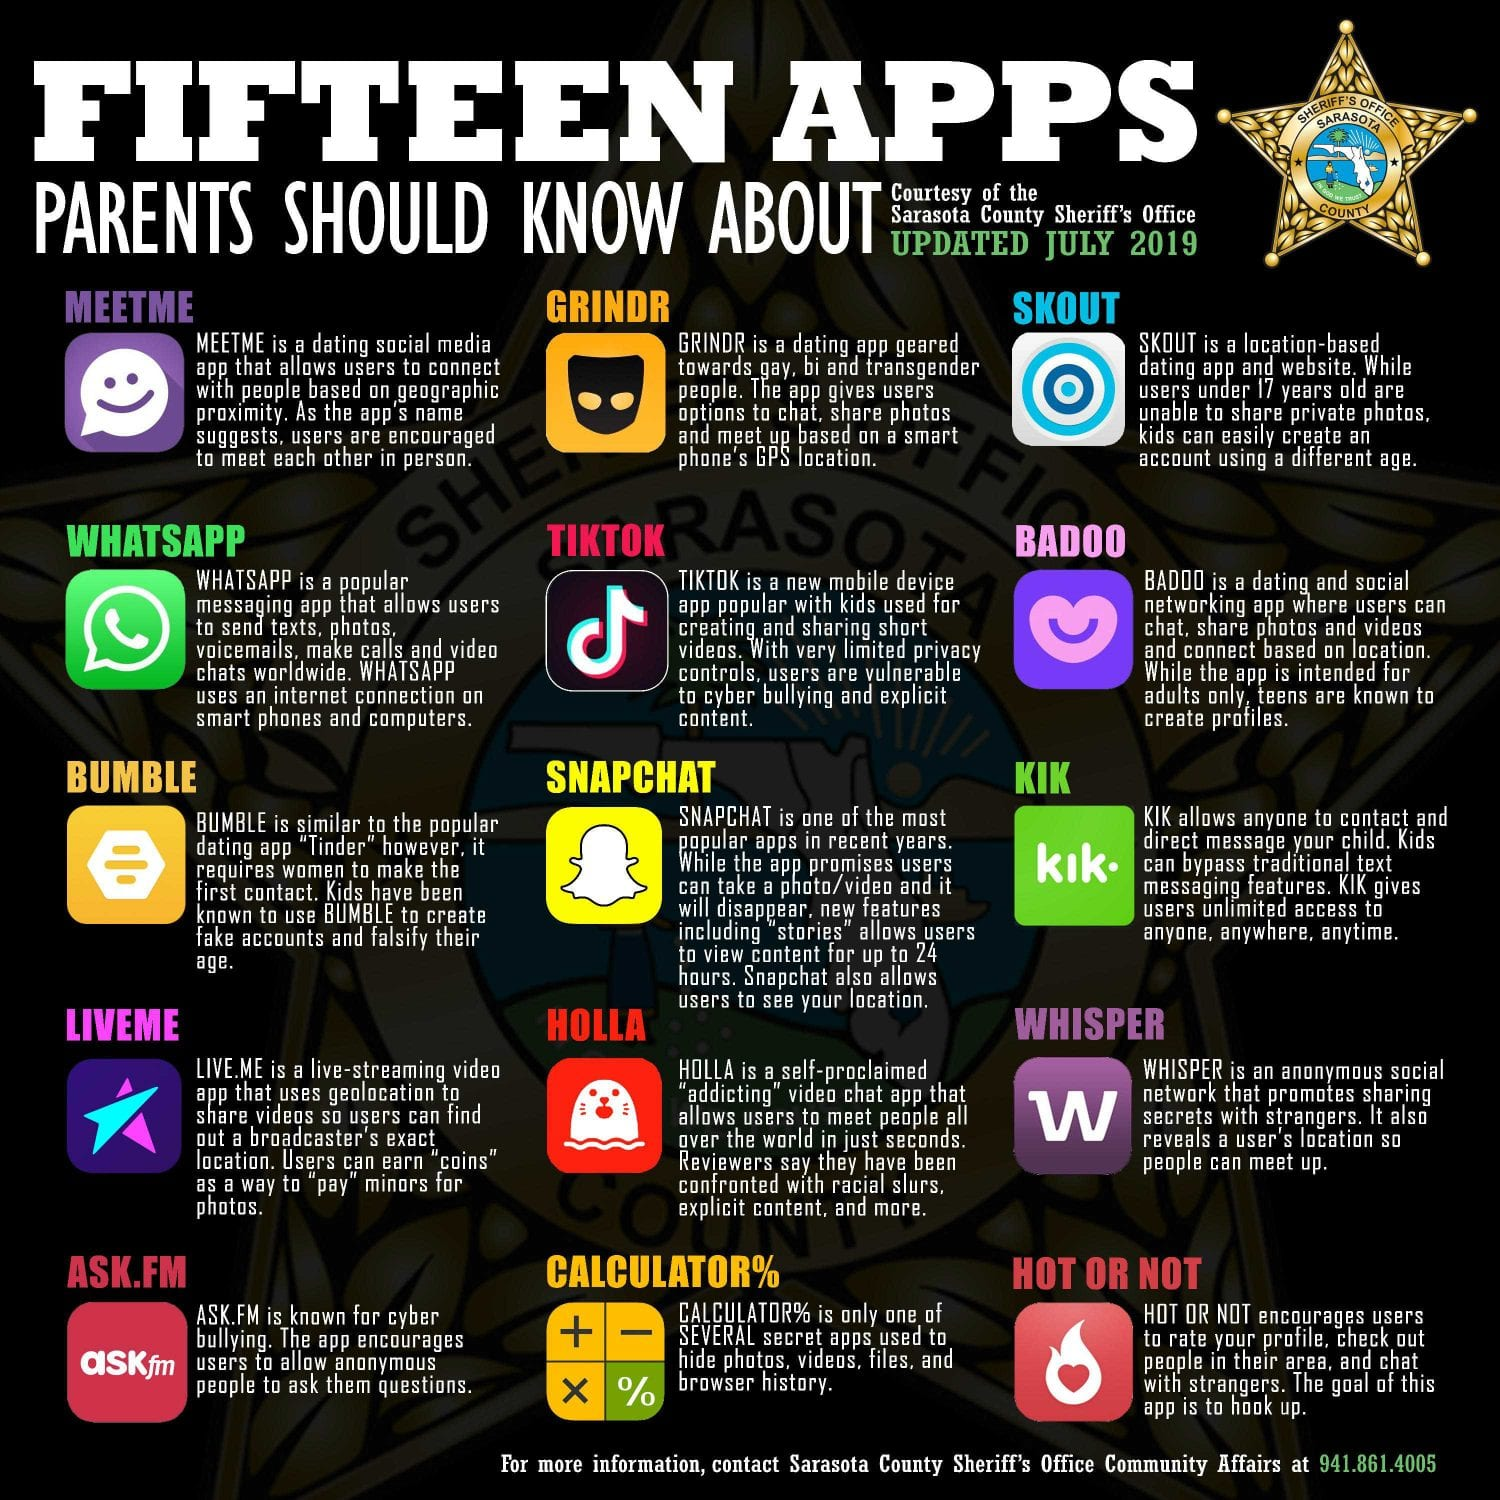 15 apps parents should know about